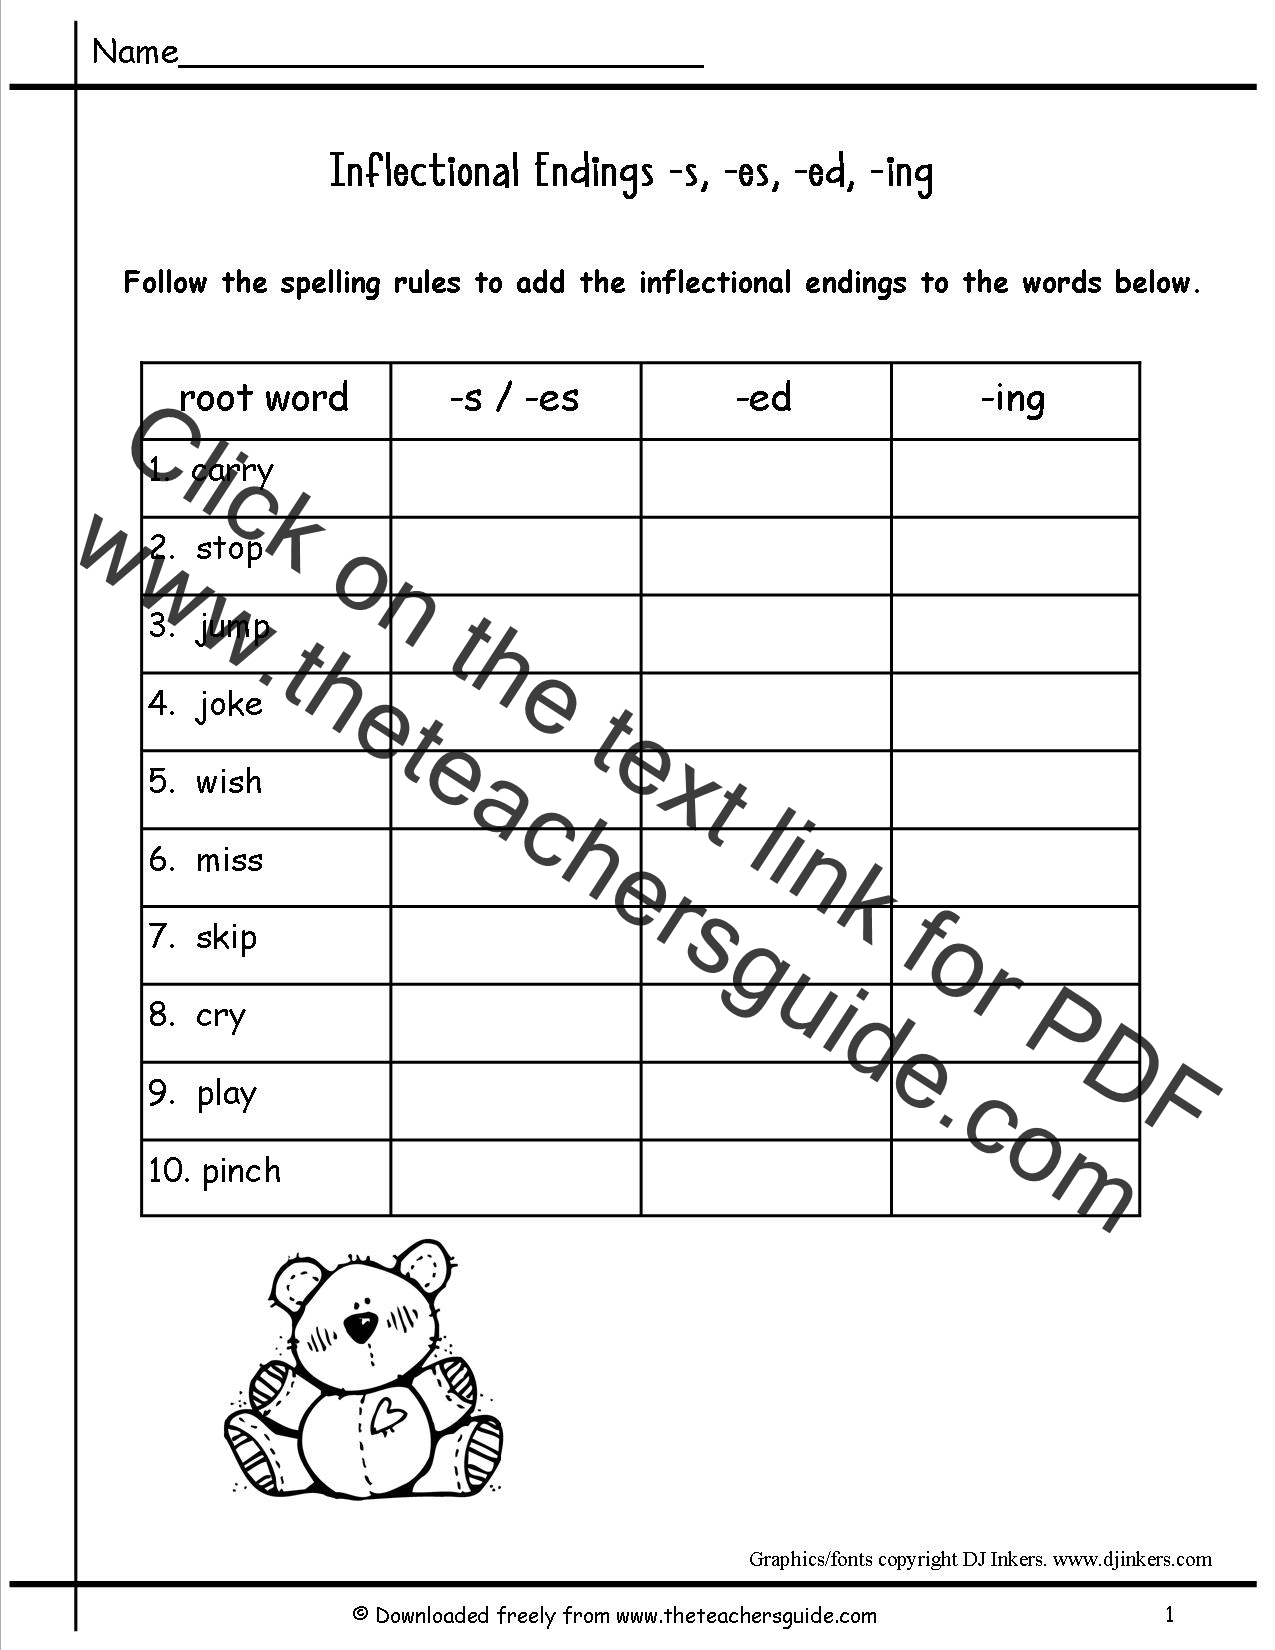 Printables Inflectional Endings Worksheet inflectional endings worksheets hypeelite wonders second grade unit four week two printouts